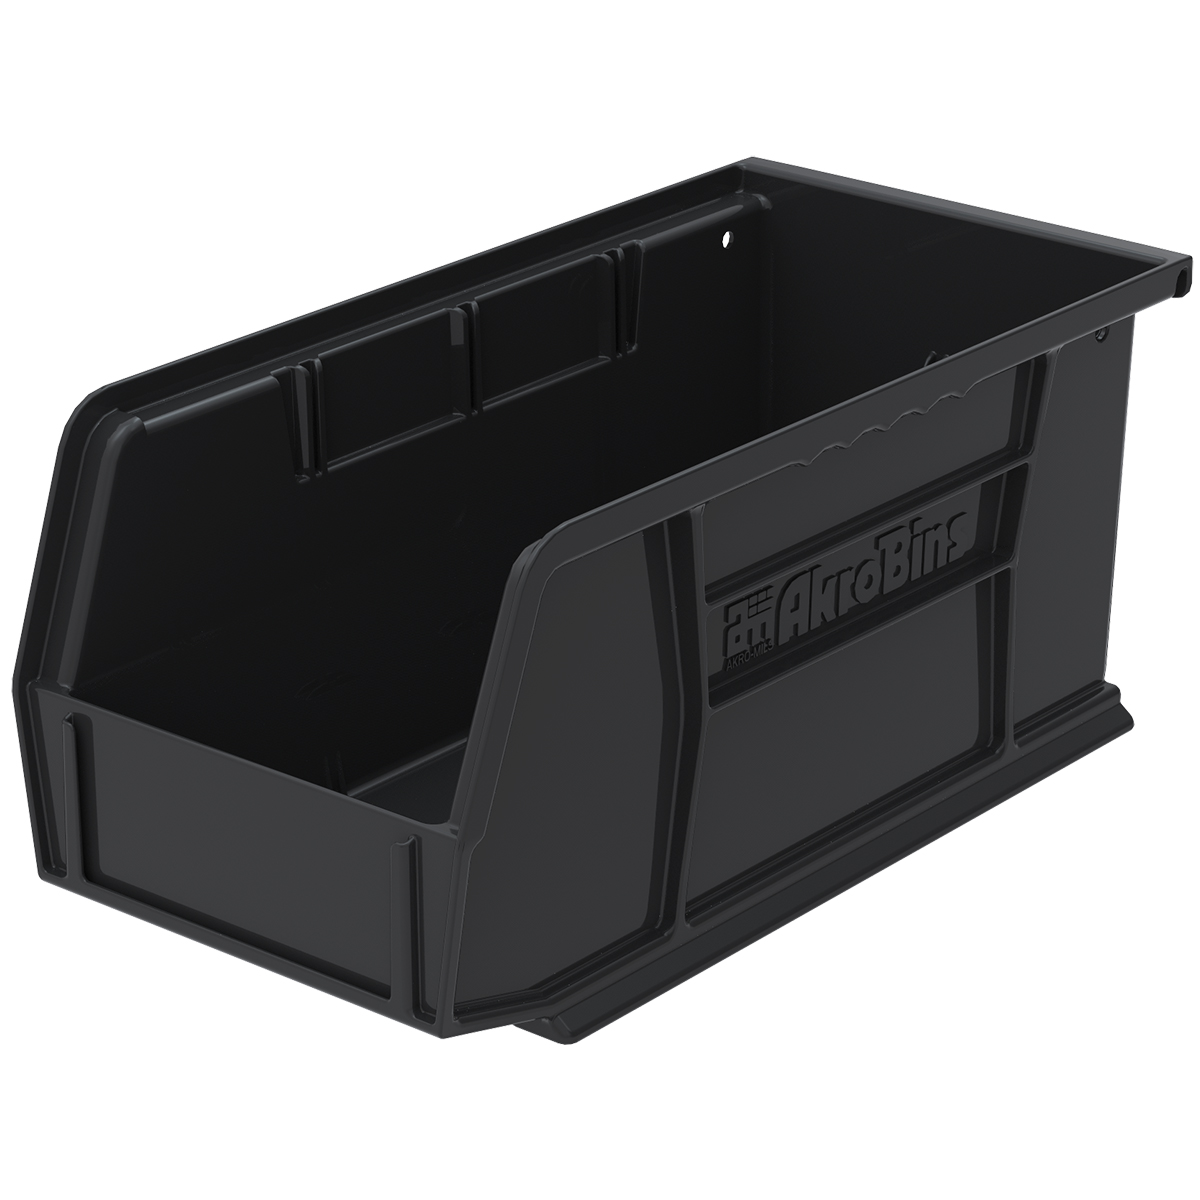 AkroBin 10-7/8 x 5-1/2 x 5, Black (30230BLACK).  This item sold in carton quantities of 12.